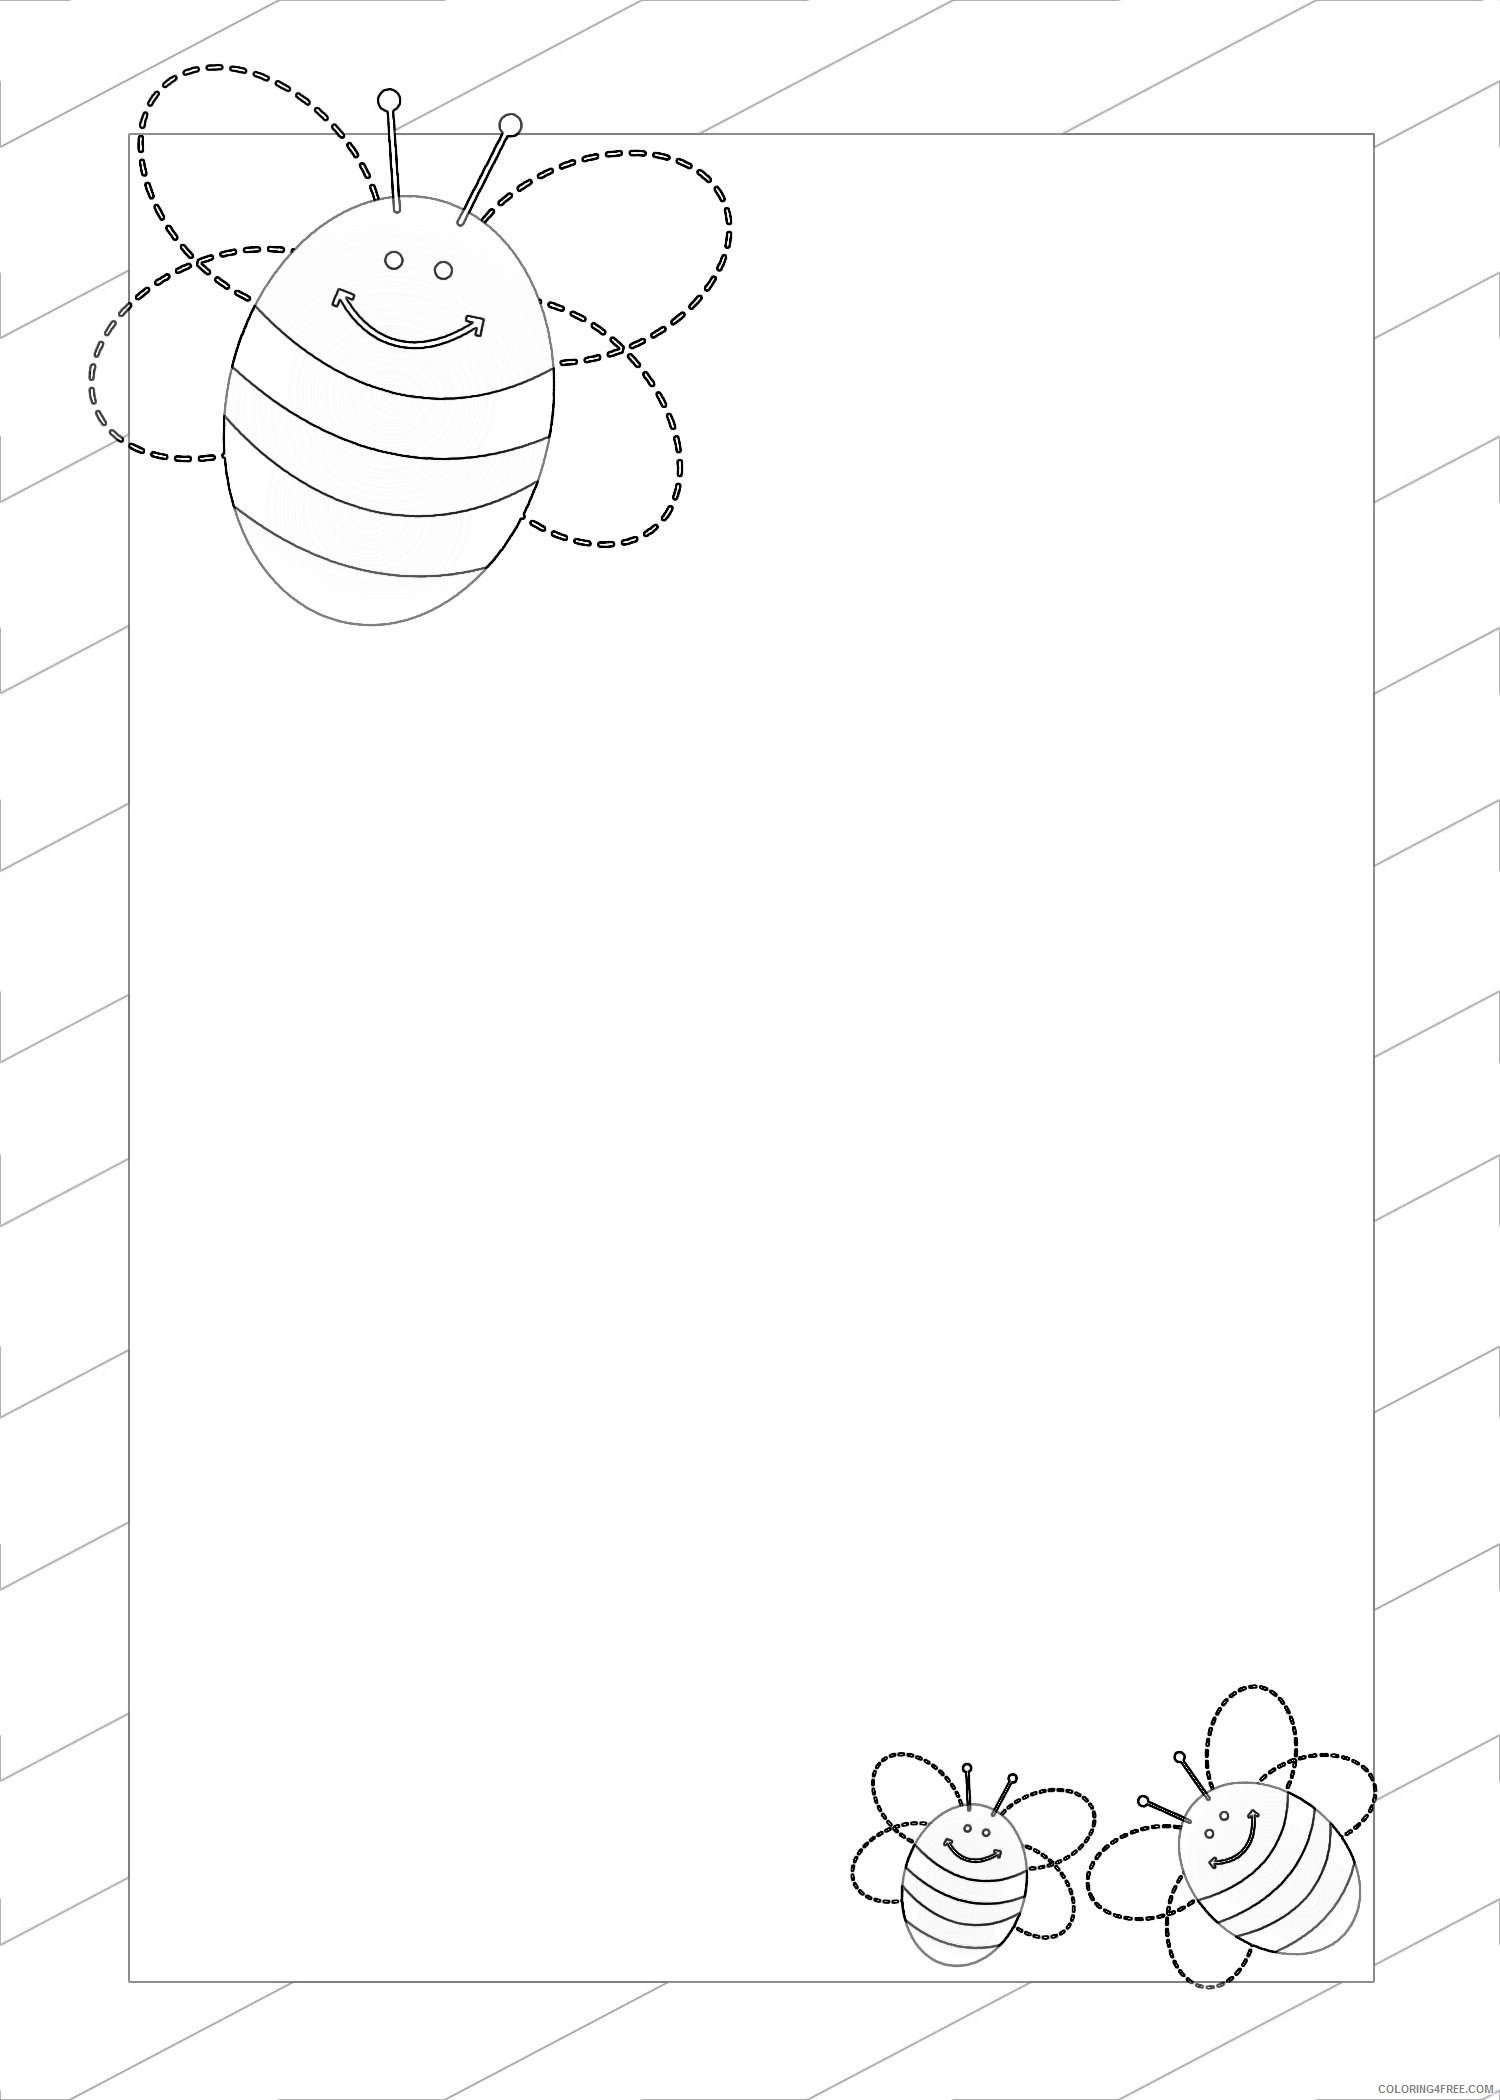 11 spelling bee borders that you can download to you xJONqr coloring